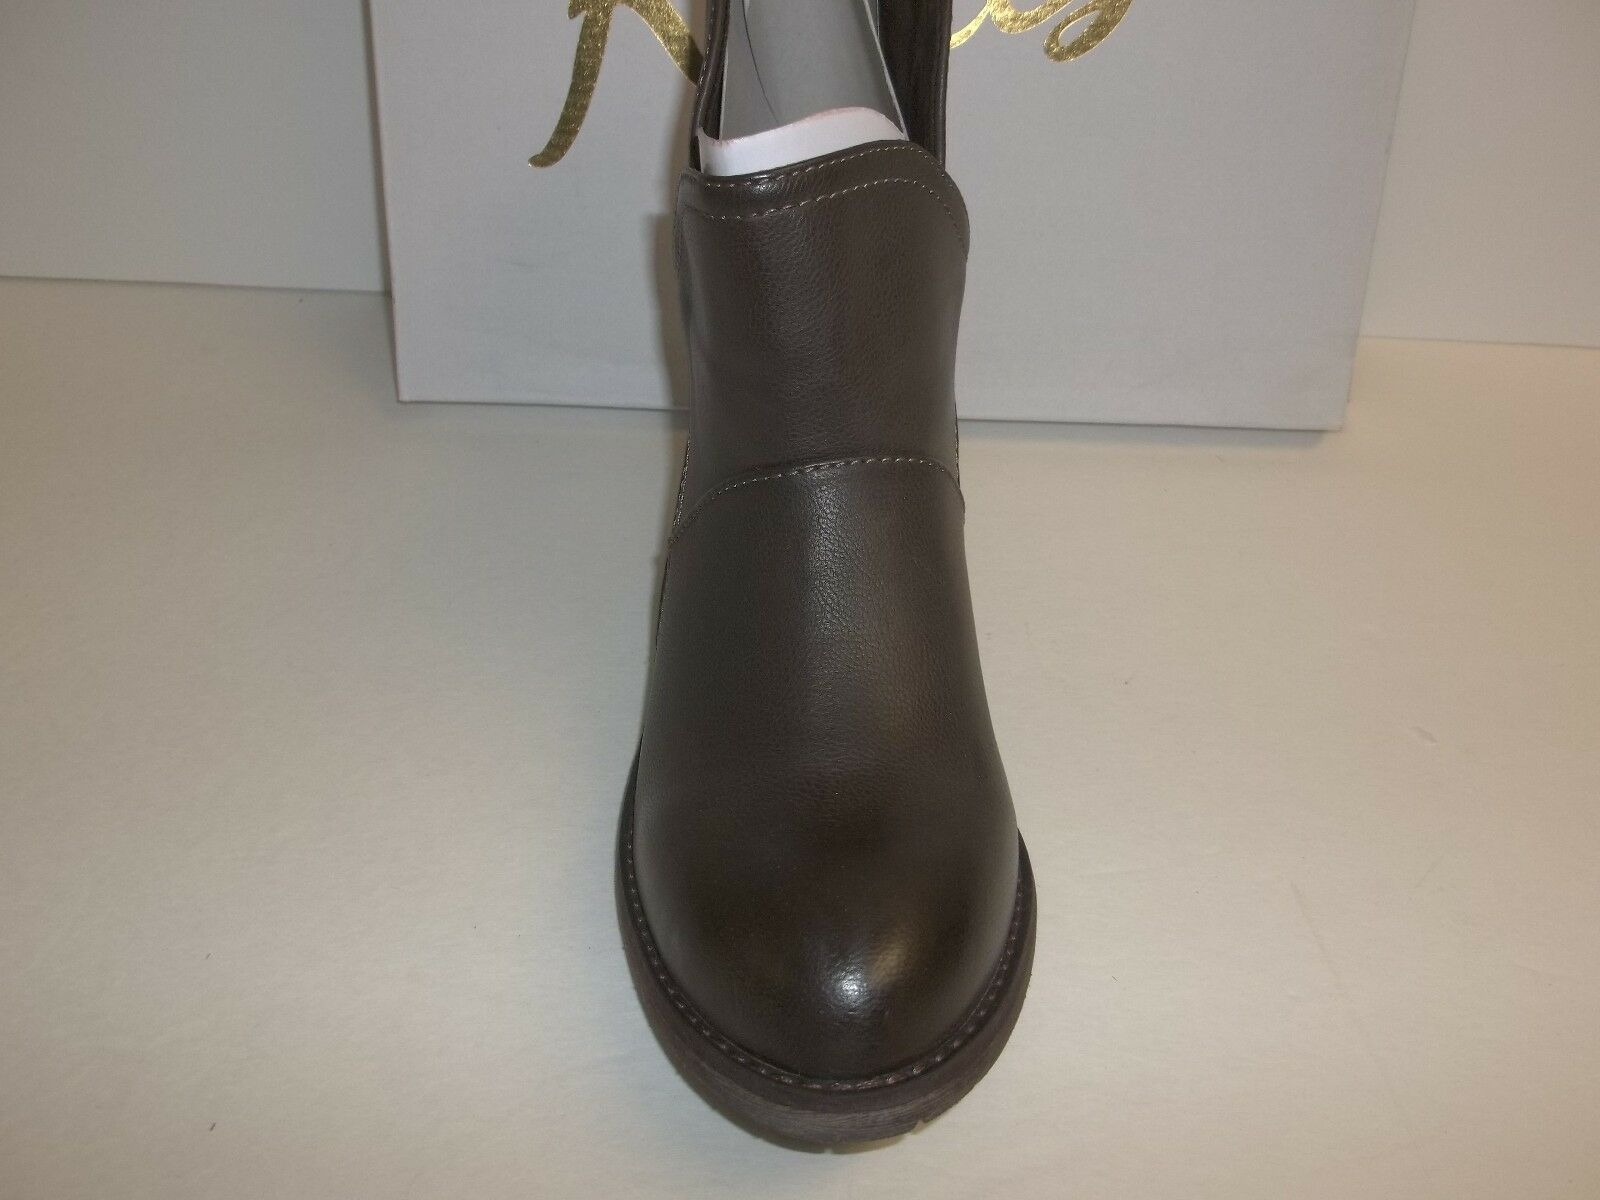 Rebels Ankle Size 6.5 M Ellis Taupe Brown Ankle Rebels Boots New Donna Shoes 56d779